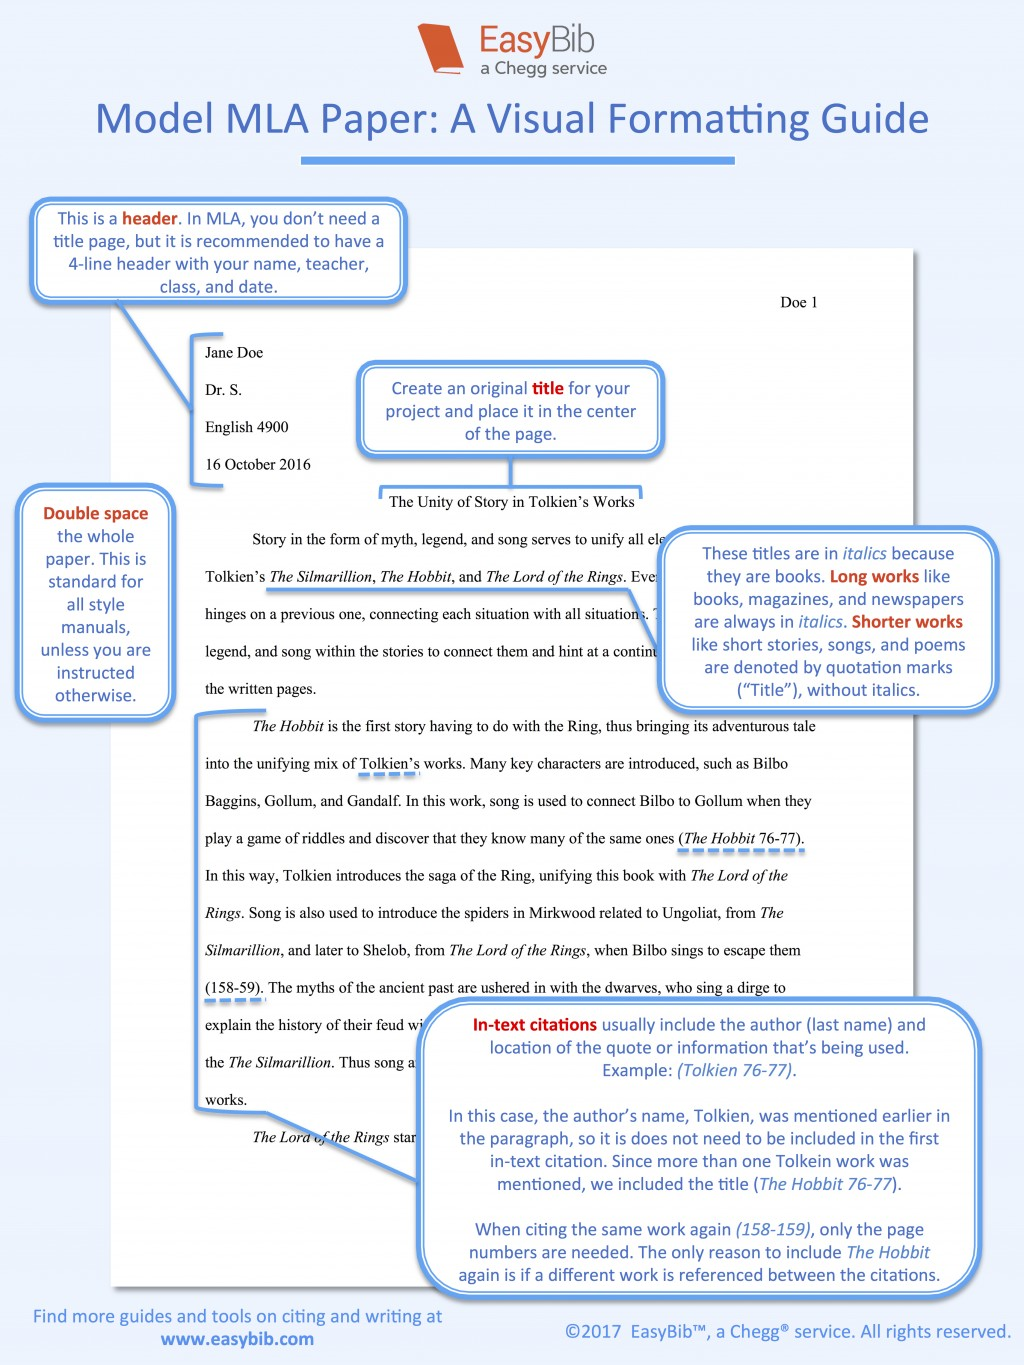 013 Model Mla Paper Citing Impressive A Research Citations In How To Cite 8 Using Format Large